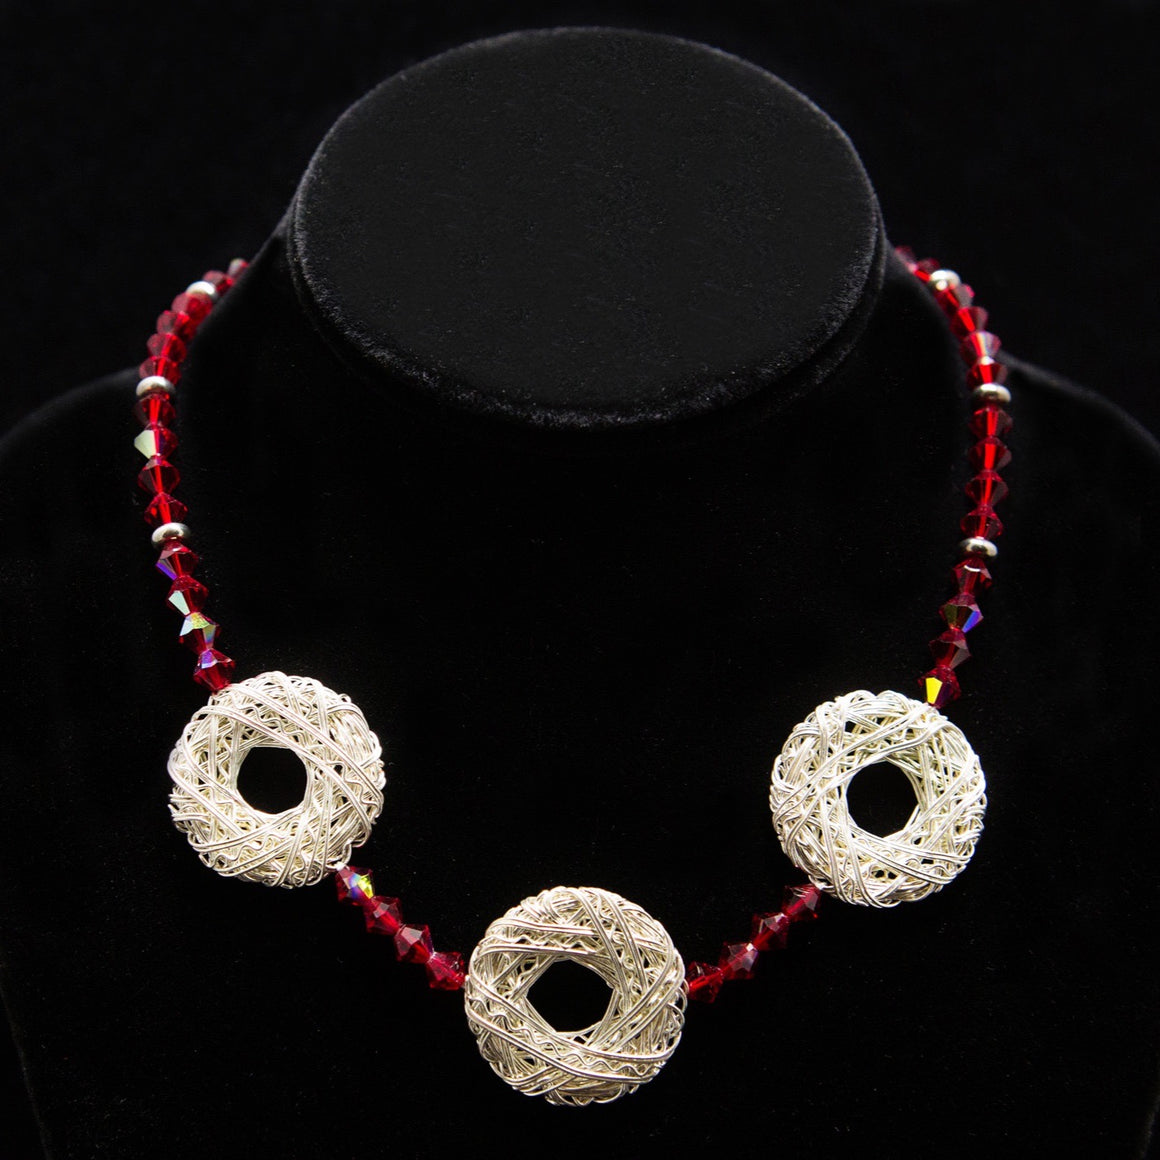 Day Necklace: Swarovski Crystal Siam with Sterling Silver Wound-Ribbon Stationed Circles